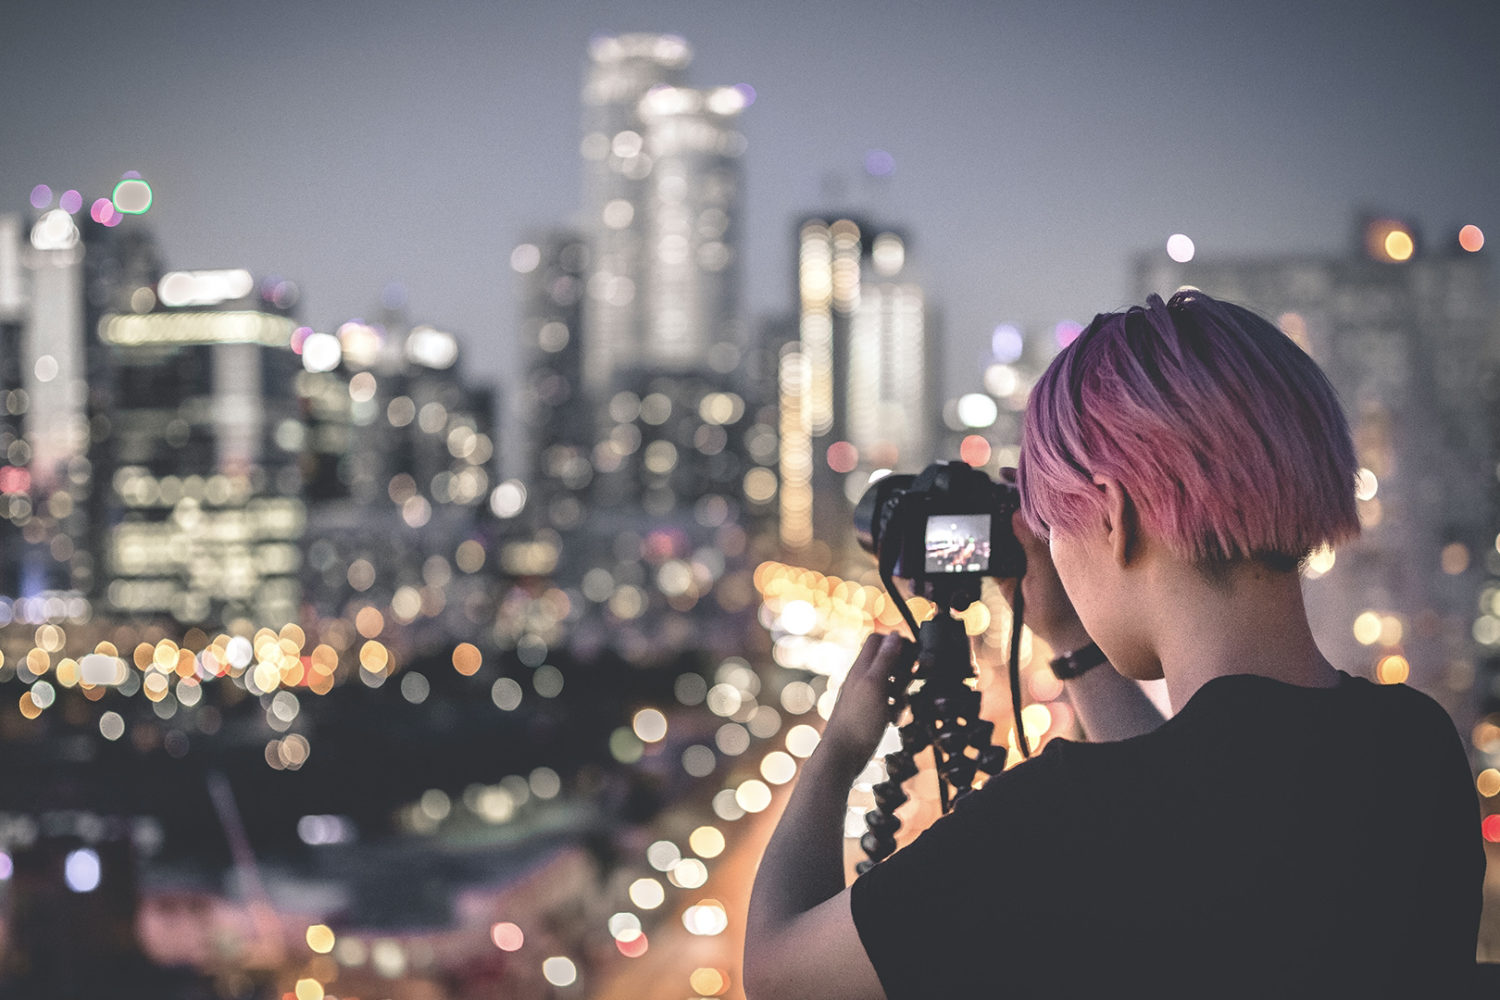 Shooting licensable cityscapes and urban exploration for your commercial portfolio